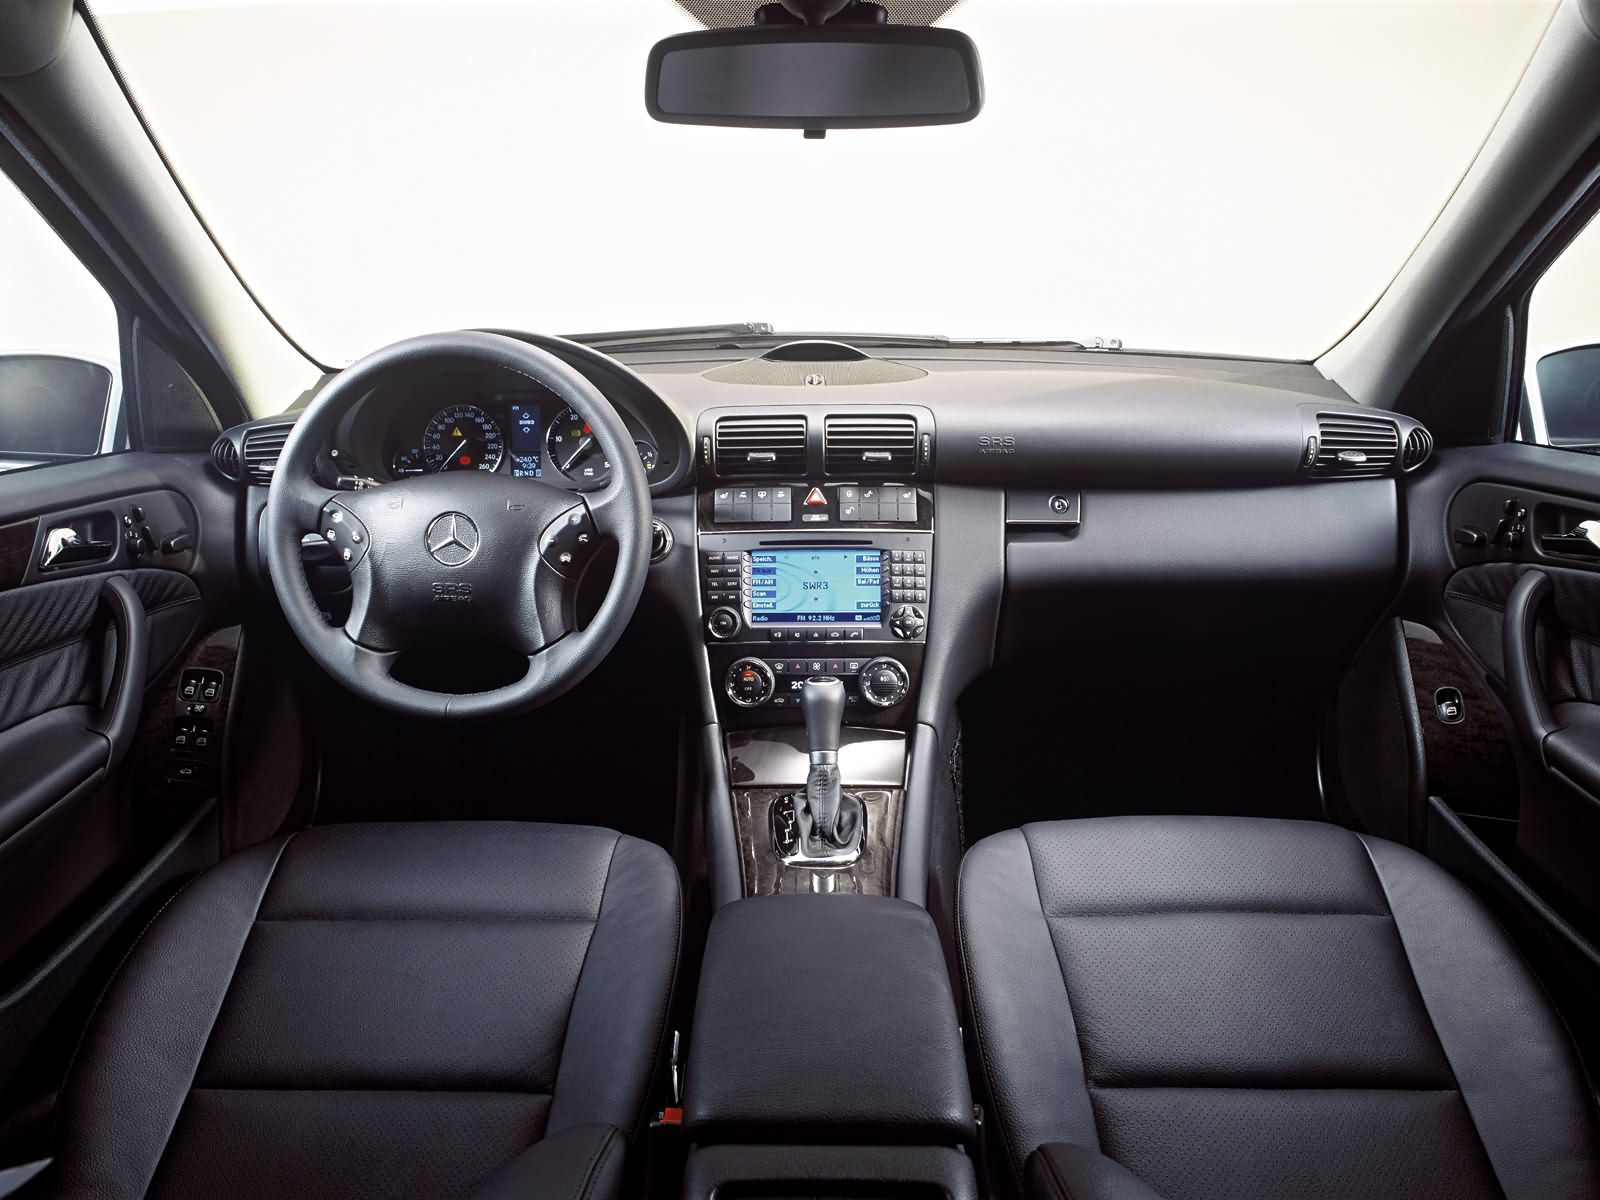 Mercedes Benz C Class W203 Photos Photo Gallery Page 4